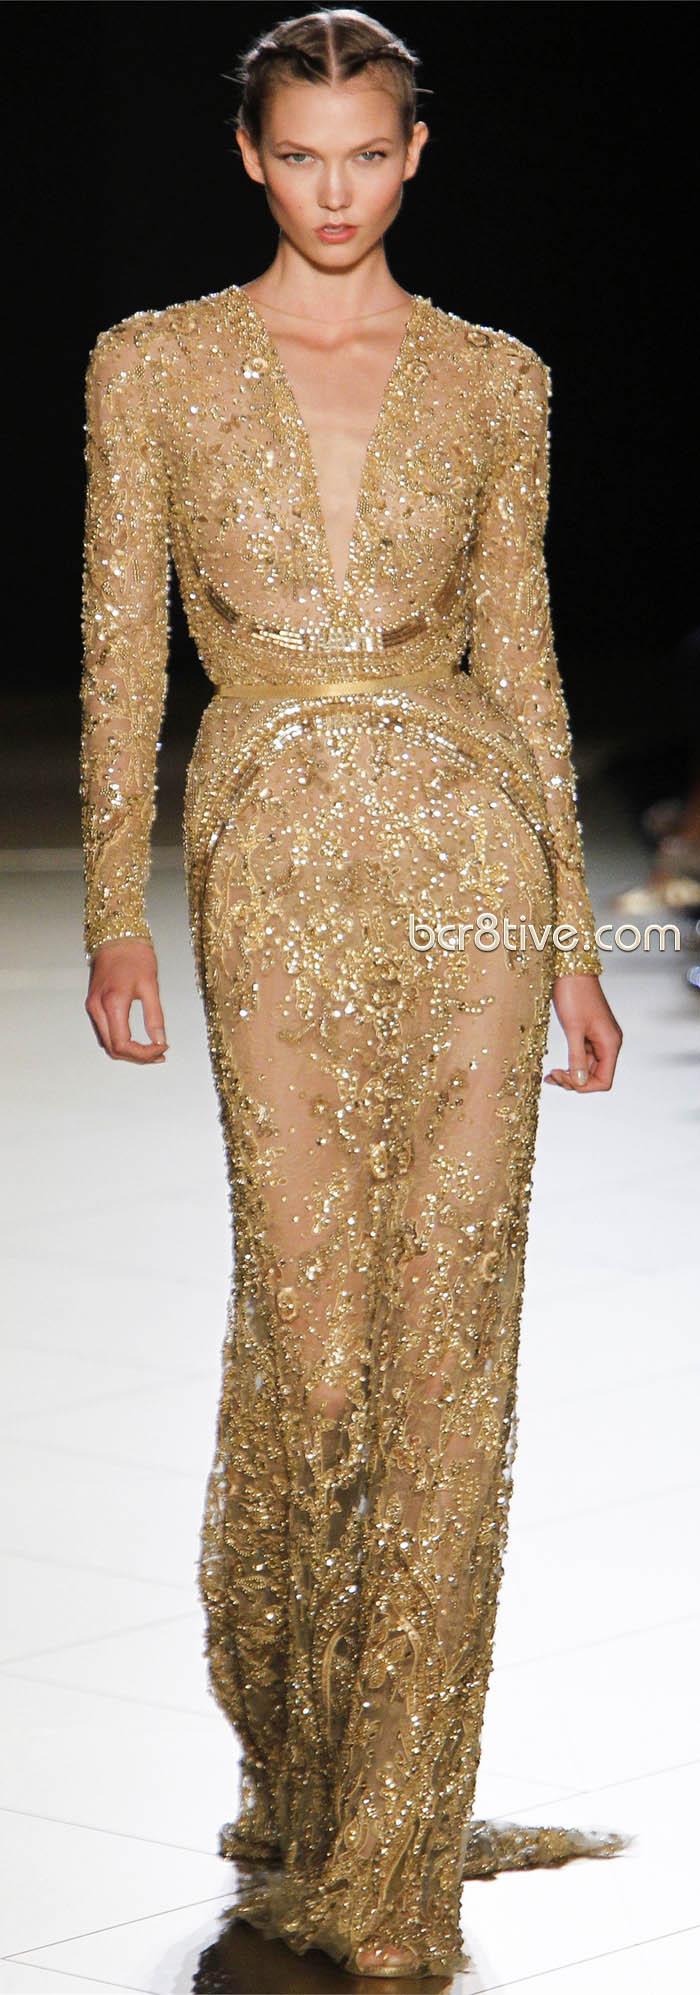 Elie Saab Couture Fall Winter 2012